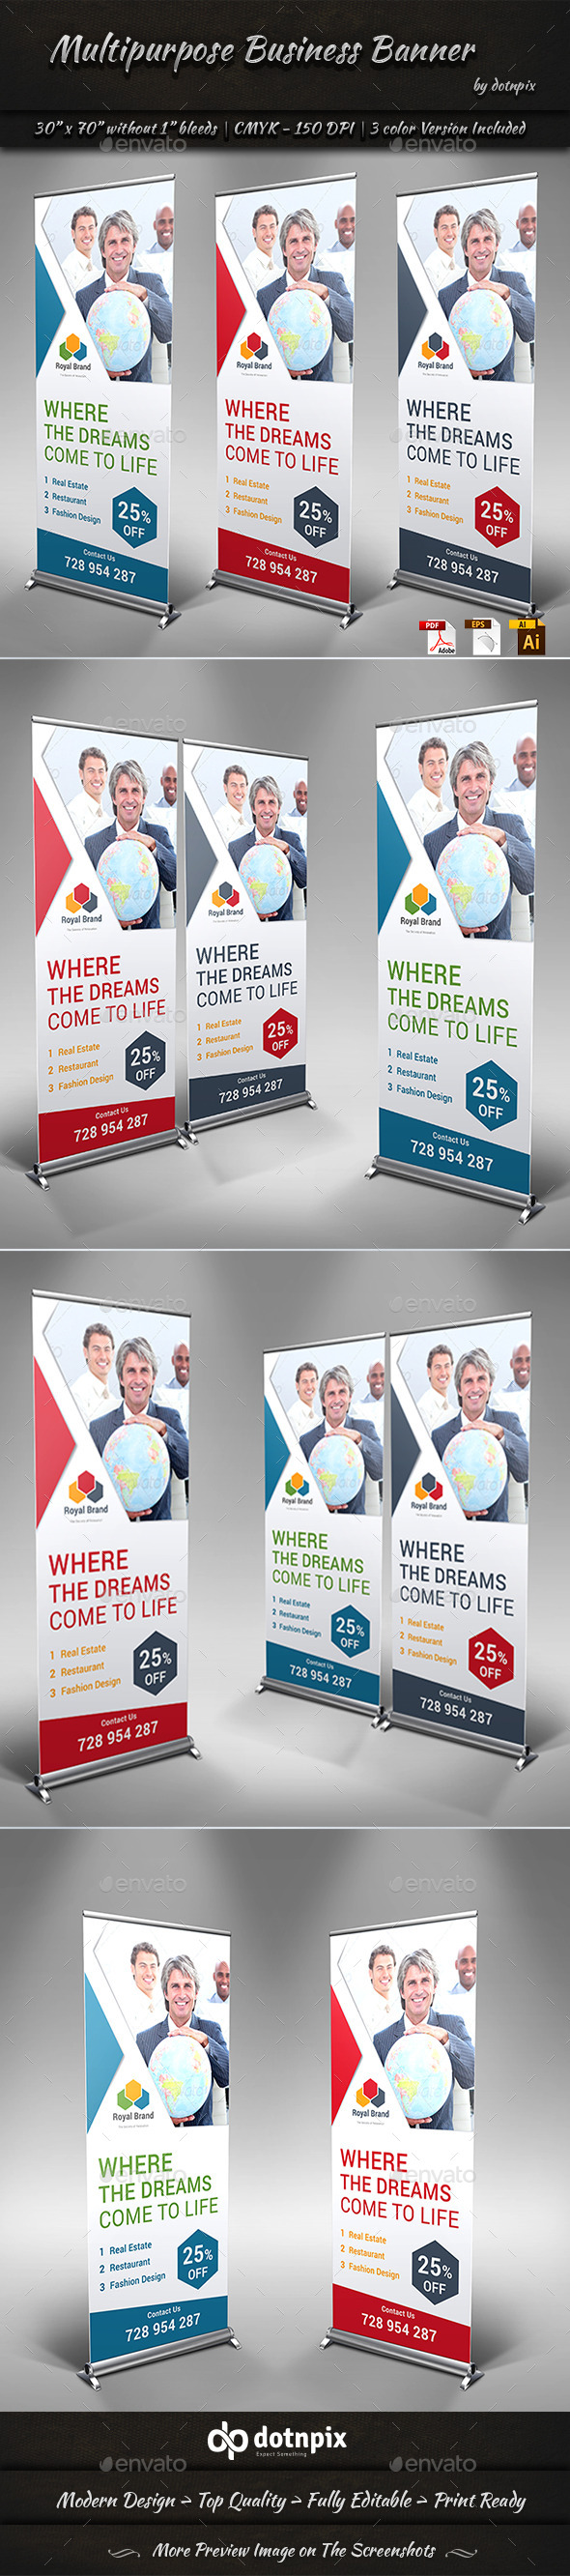 Multipurpose Business Banner